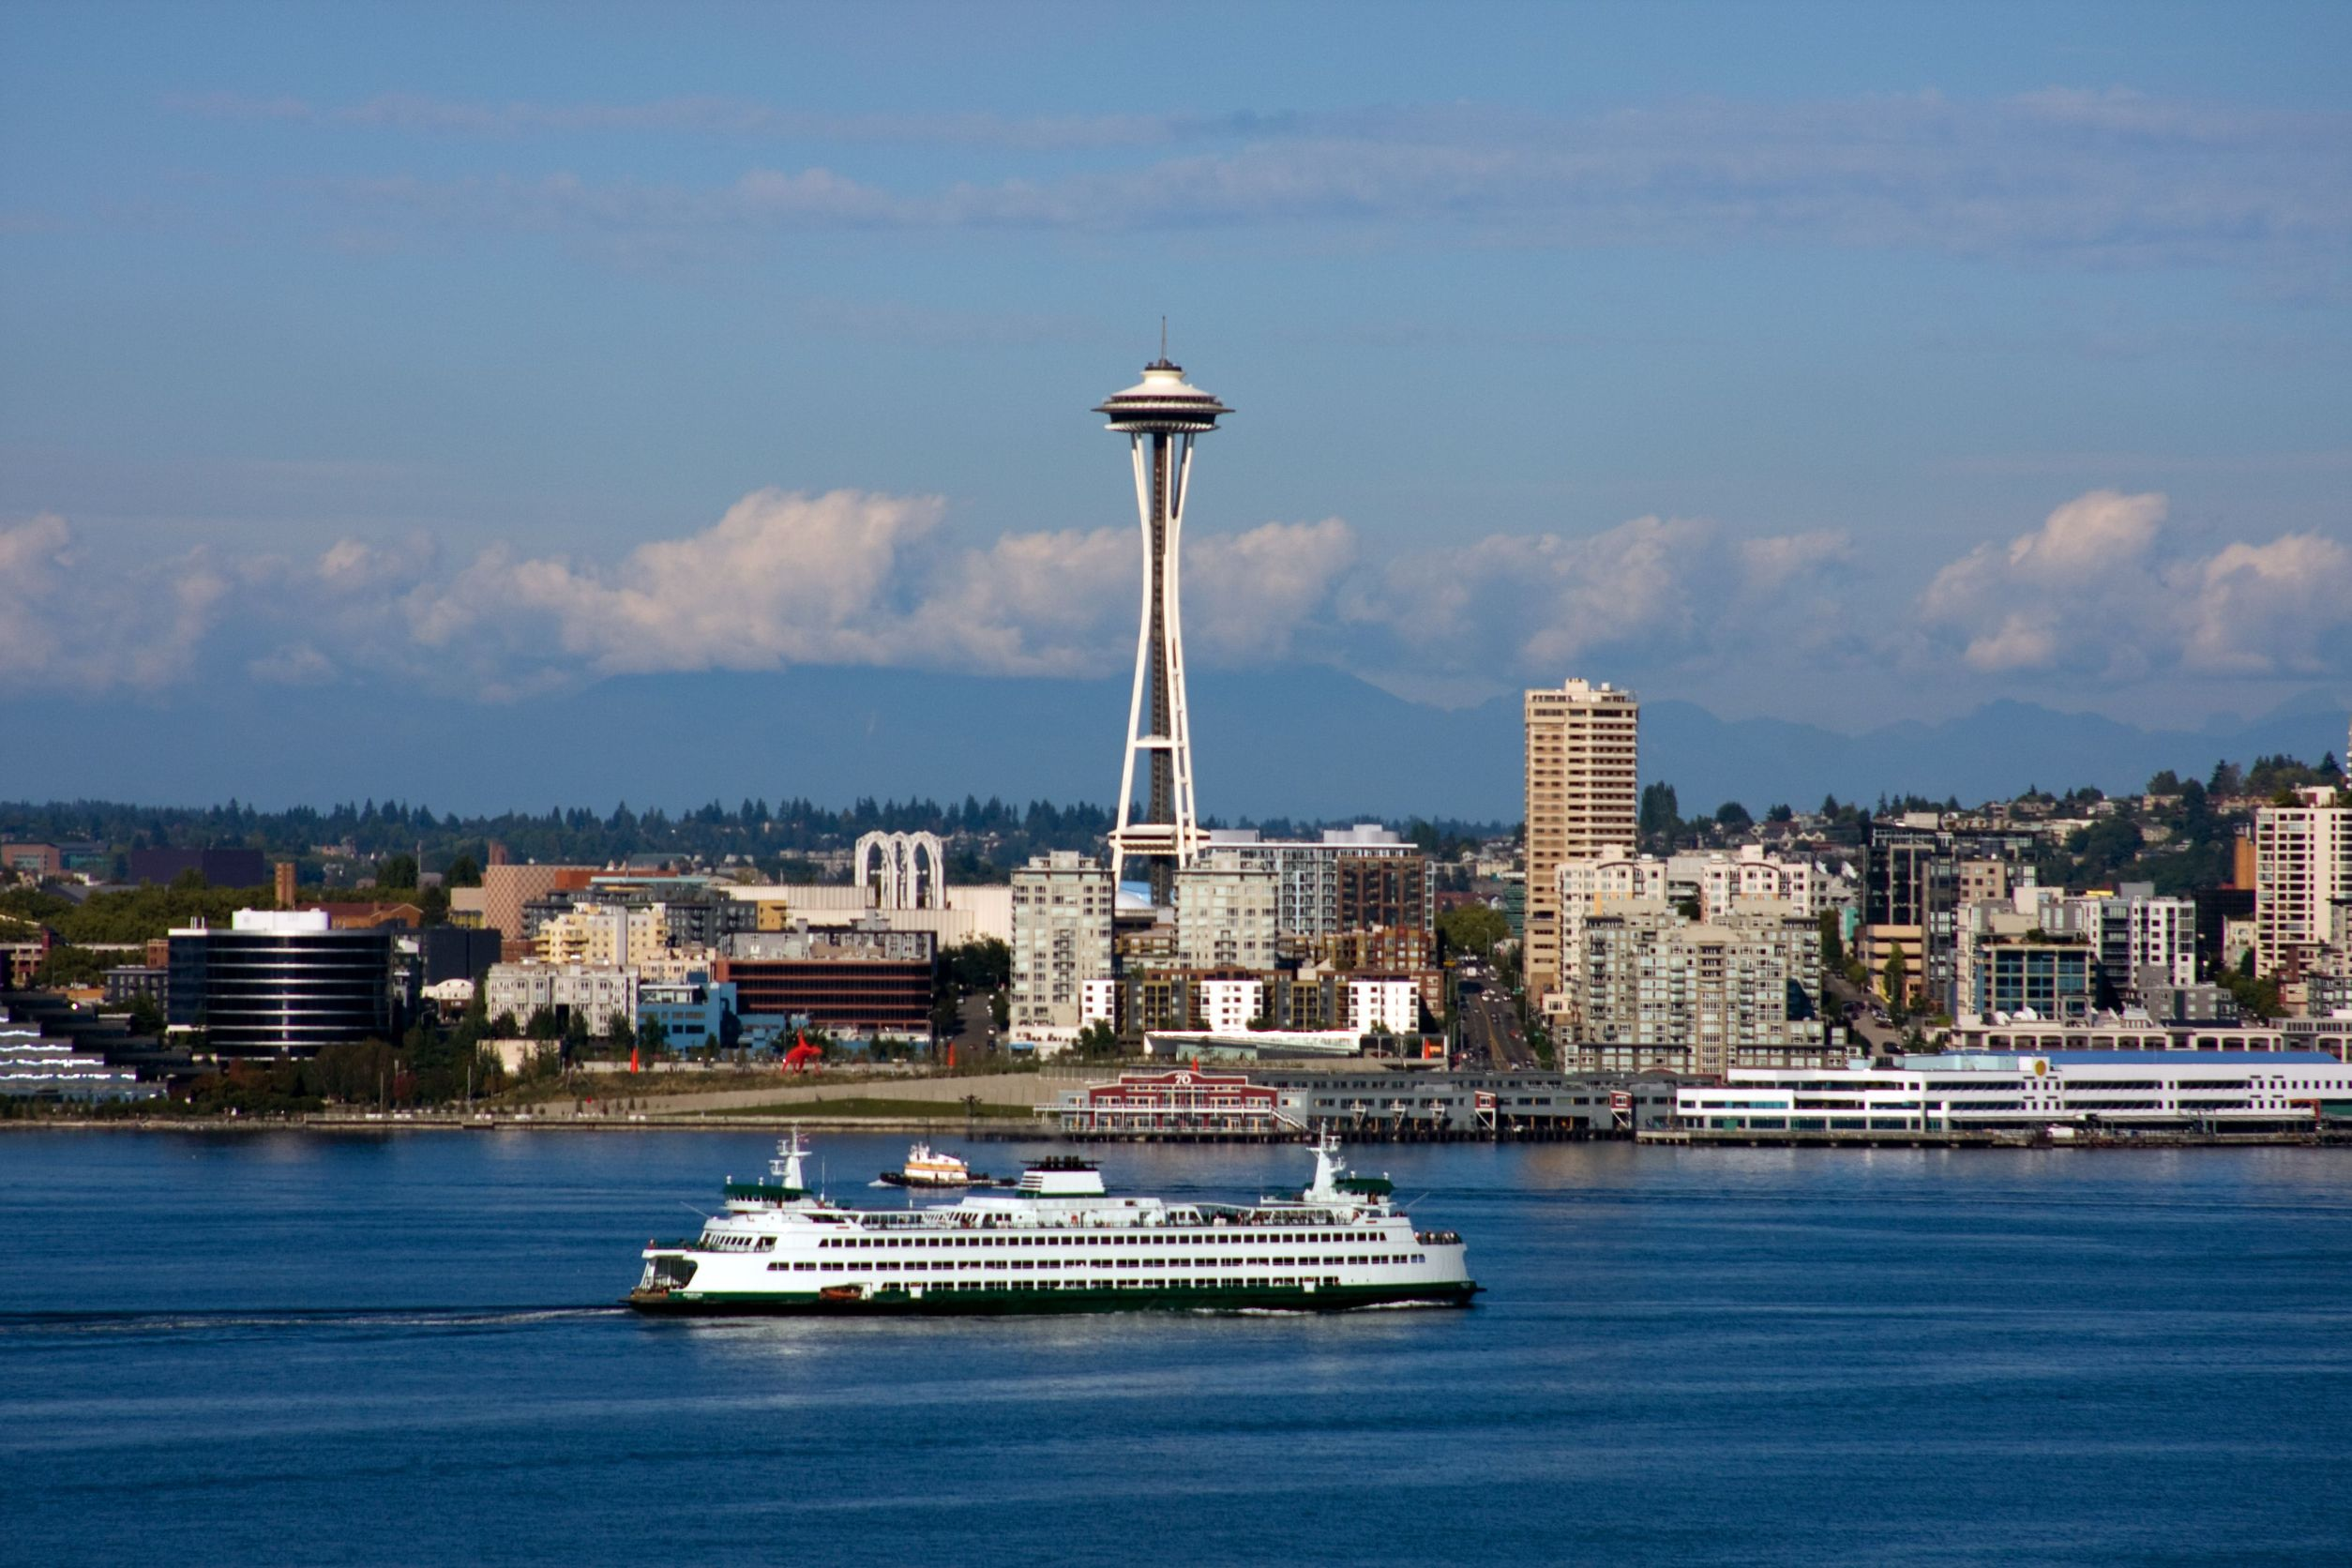 Seattle WA Cruise Ship Injury Lawyer | LWM Legal